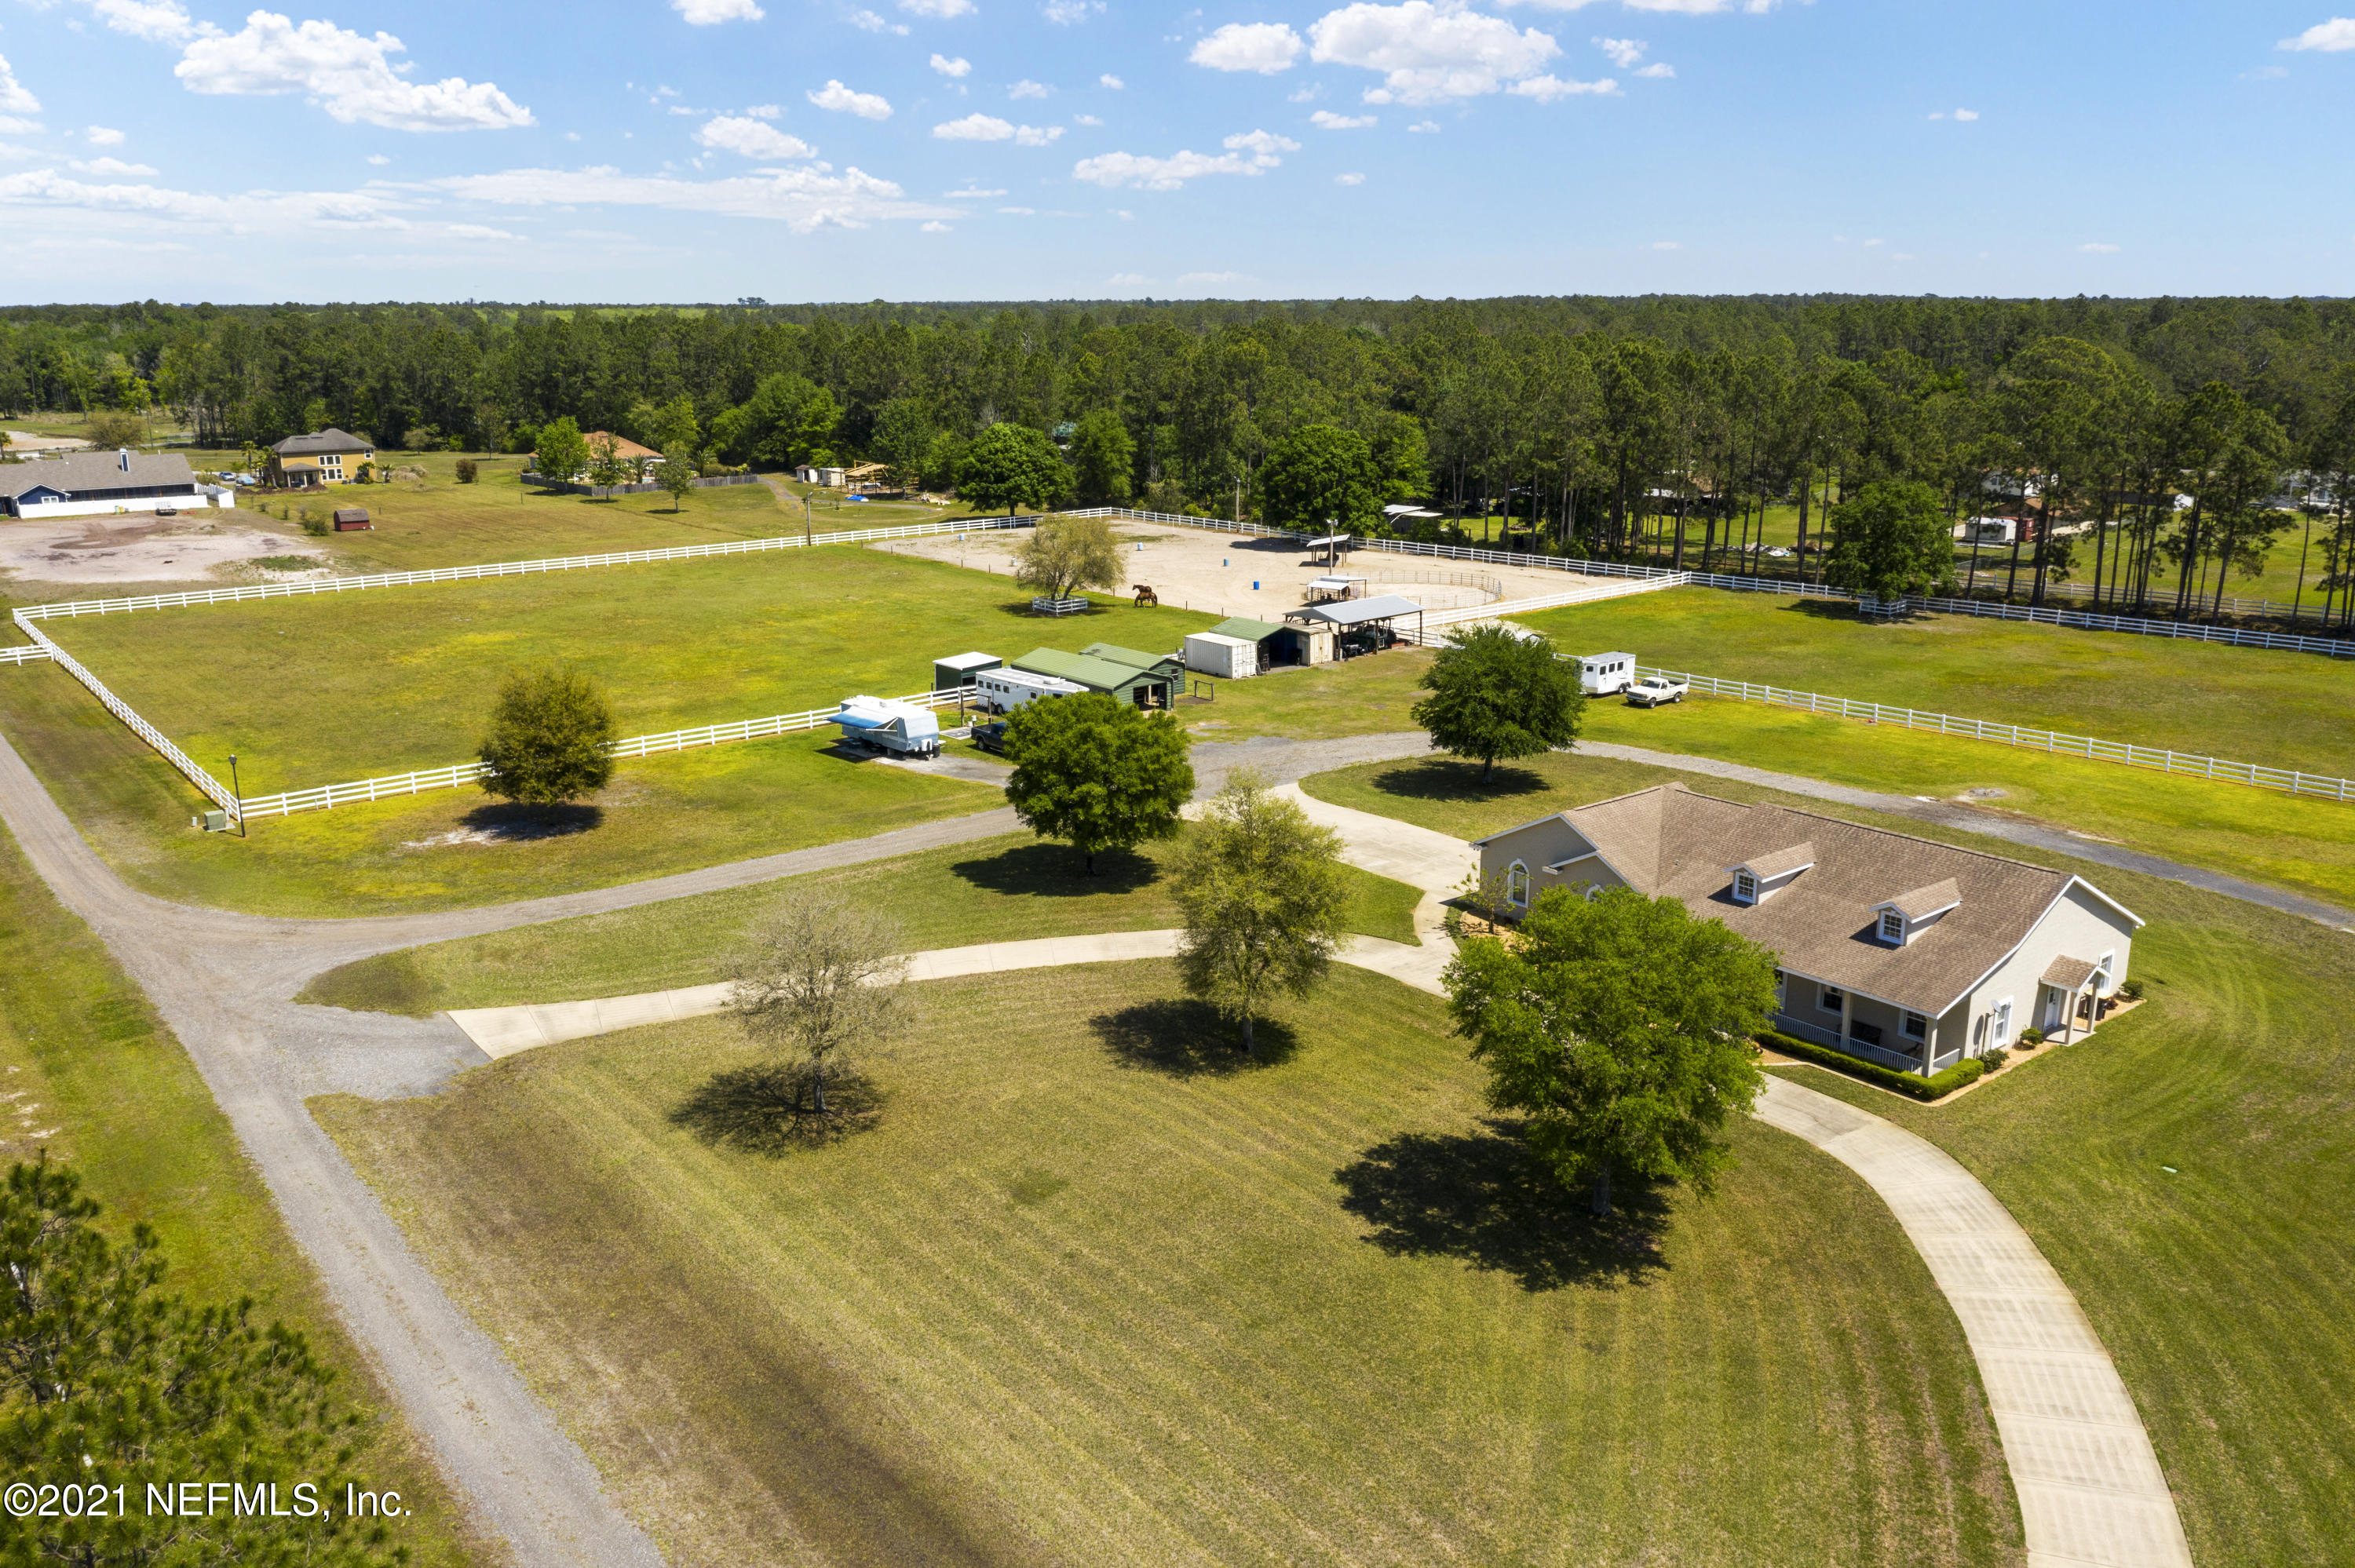 Come see this one of a kind 8 Acre Horse property within 20 minutes of downtown Jacksonville! It comes with a lit sand riding arena, 5 stable barn, and a one owner 2305 sq ft house. The house was custom built in 2004 with the builder specs of South Florida. That means that every wall is filled concrete block from foundation to the roof line and the roof is a hearty 30 year architectural shingle. The 2 car garage is oversized with 9 foot doors and 10 foot ceilings with more than 30ft of depth. The inside of the home is also well appointed with 10ft ceilings throughout with a vaulted ceiling in the living room and a trey ceilings in the dining room and master bedroom. The kitchen has quartz counters and a full gourmet double oven stainless steel appliances with 42'' original maple cabinets. The master bedroom has private access to the covered porch, his and hers closets, separate shower with jetted bathtub, and a double vanity. The interior also has wired speakers throughout the home and a full interior laundry room. On the covered porch is a full outdoor kitchen with sink and it's electronically prepped for a pool. Outside is where the fun begins. The exterior of the home was just recently painted. There is a powered sprinkler system throughout the property. An RV hookup with power, septic and water. A 5 stall metal barn with a 12x14 insulated tack room and a metal hay barn. The back pasture is 1.5 acres and the other pasture is 2 acres. In the arena, there is water and power at the shelter along with power at the hay shelter. Only 12 miles from Diamond D Ranch and the Equestrian Center. Also, the Jacksonville-Baldwin Rail Trail is just around the corner and a great place to ride. Call today for your showing!